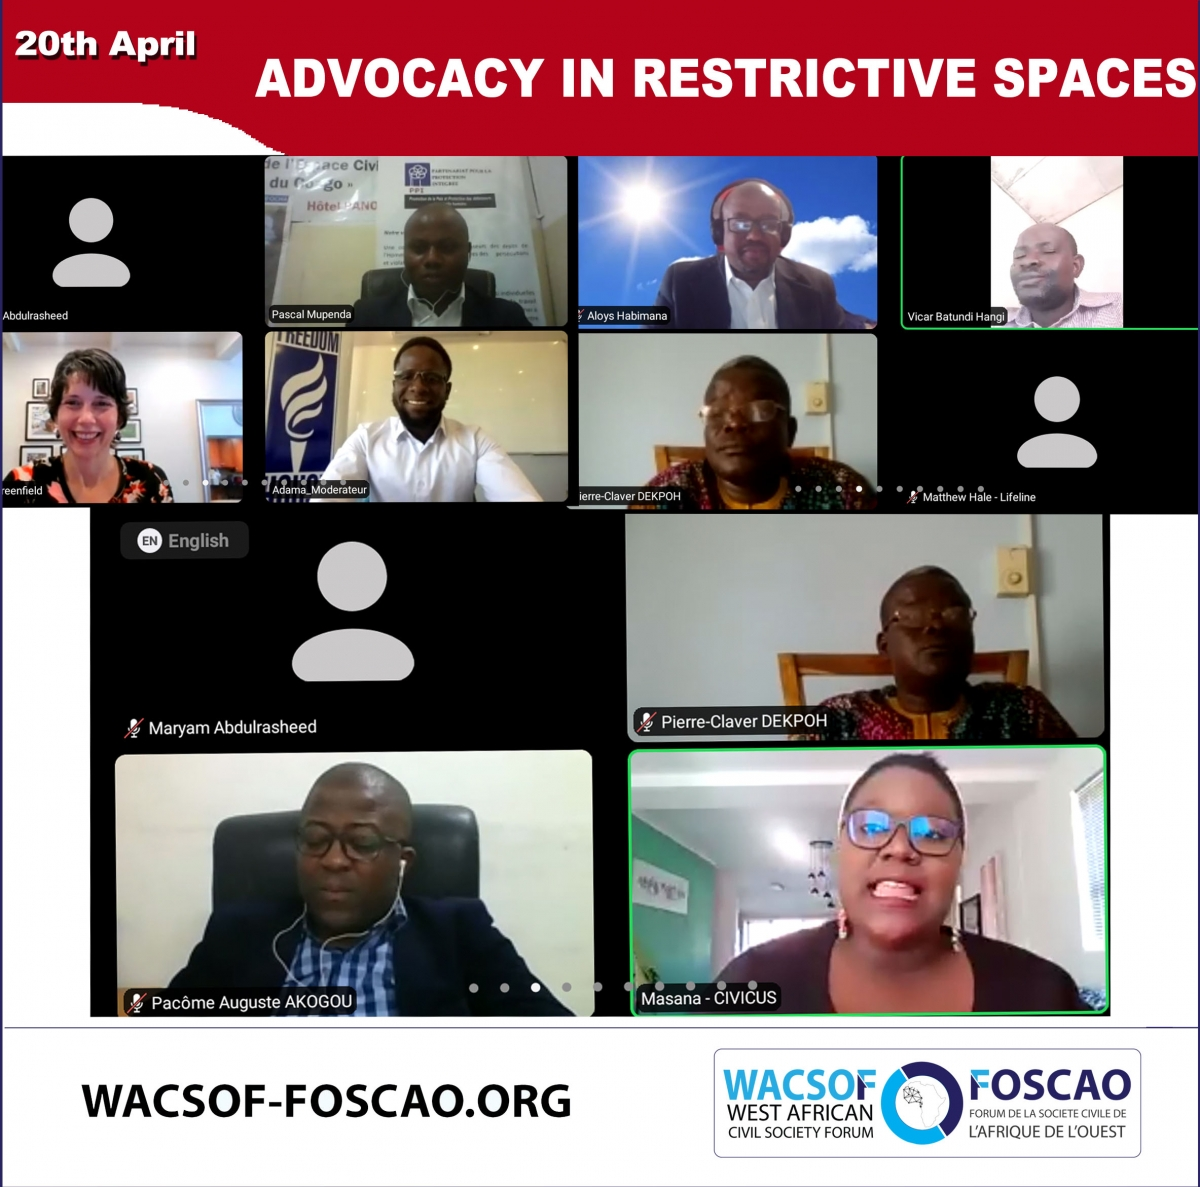 ADVOCACY IN RESTRICTIVE SPACES